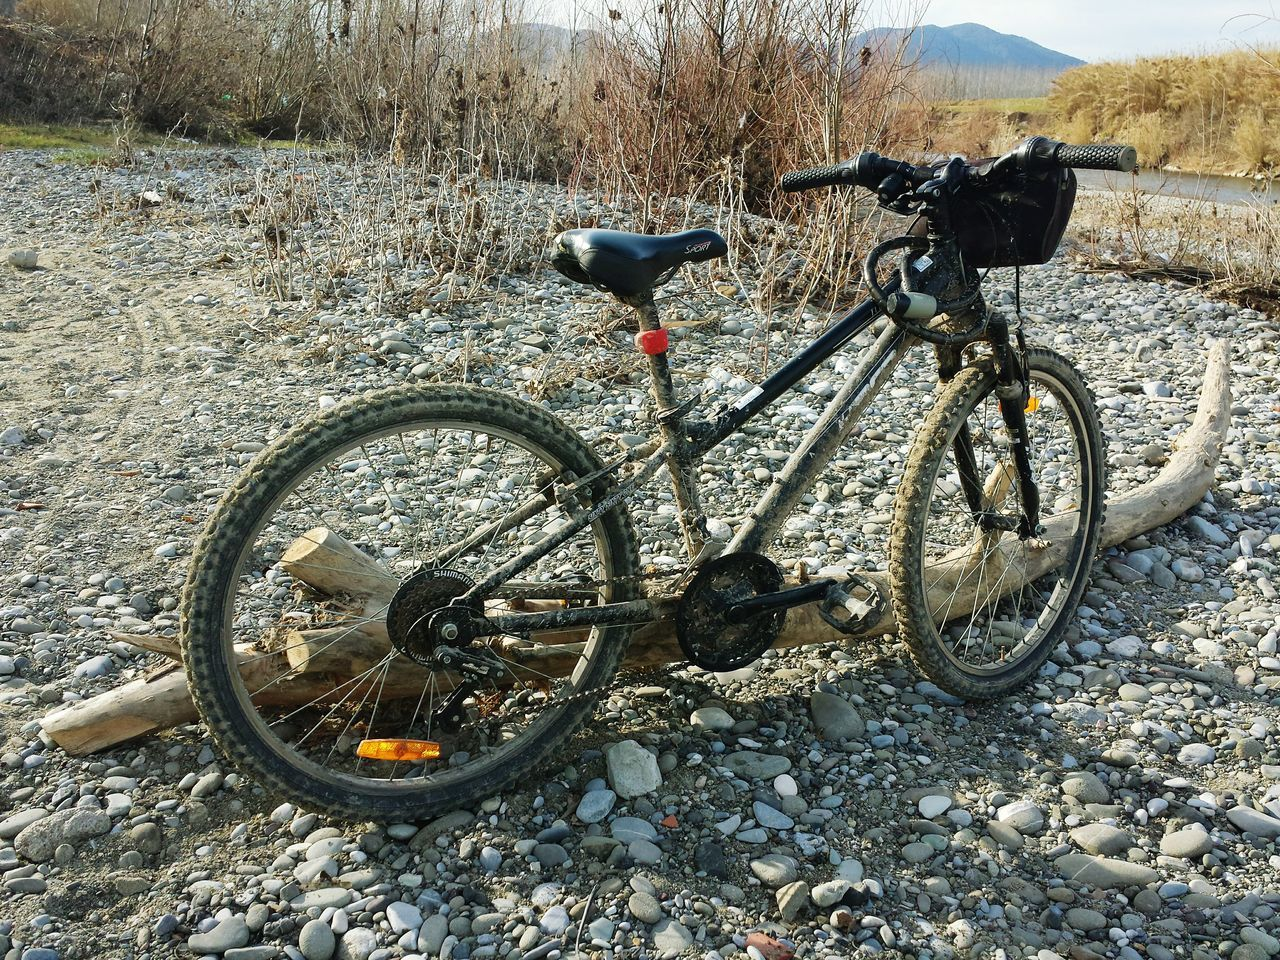 bicycle, transportation, mode of transport, land vehicle, stationary, day, outdoors, no people, wheel, mountain bike, bicycle rack, nature, tire